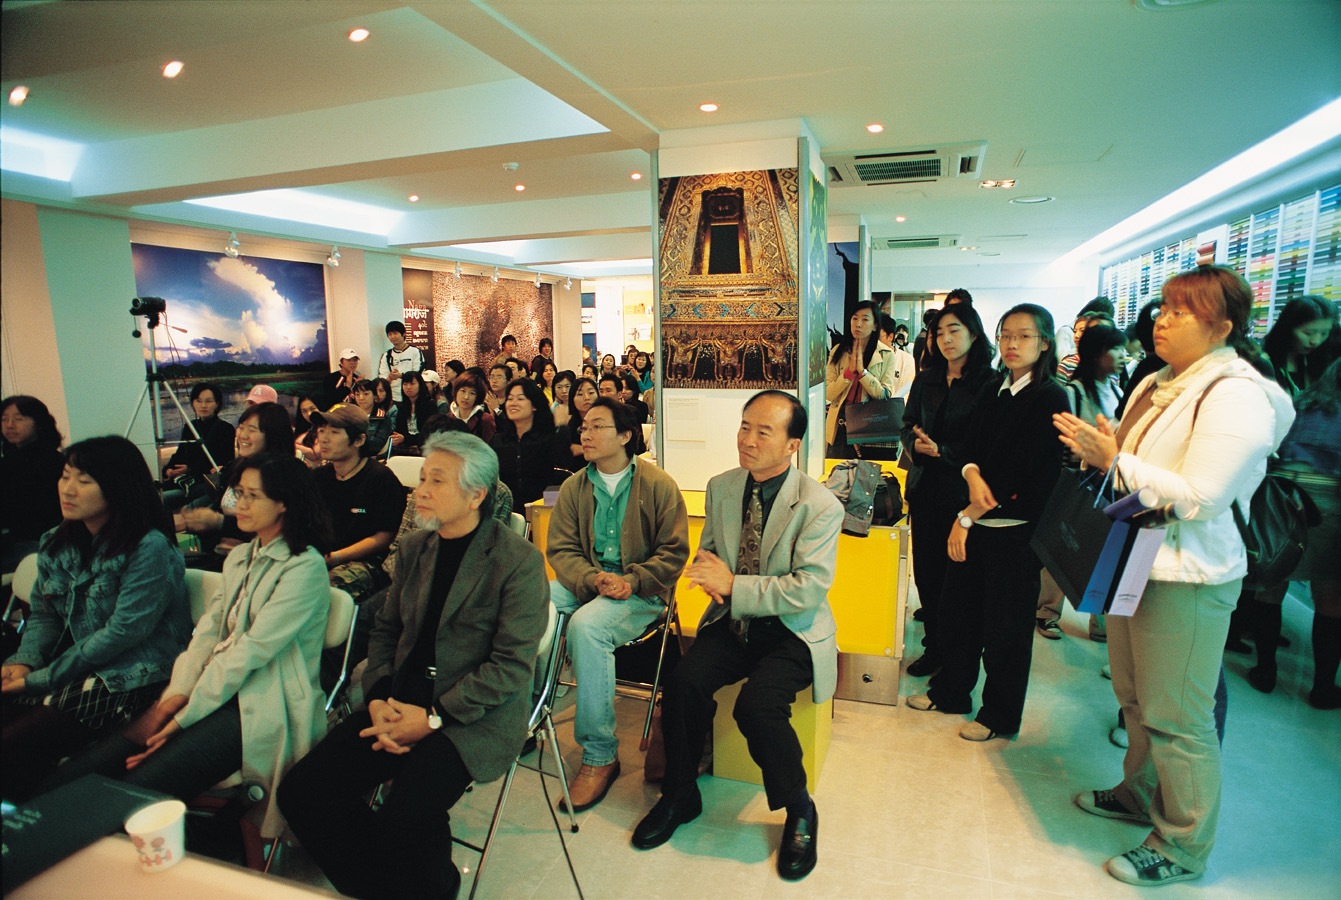 The Samwon Paper Gallery is a paper & printing resource centre and a cultural art space that hosts international exhibitions and lectures on topics related to the design industry.